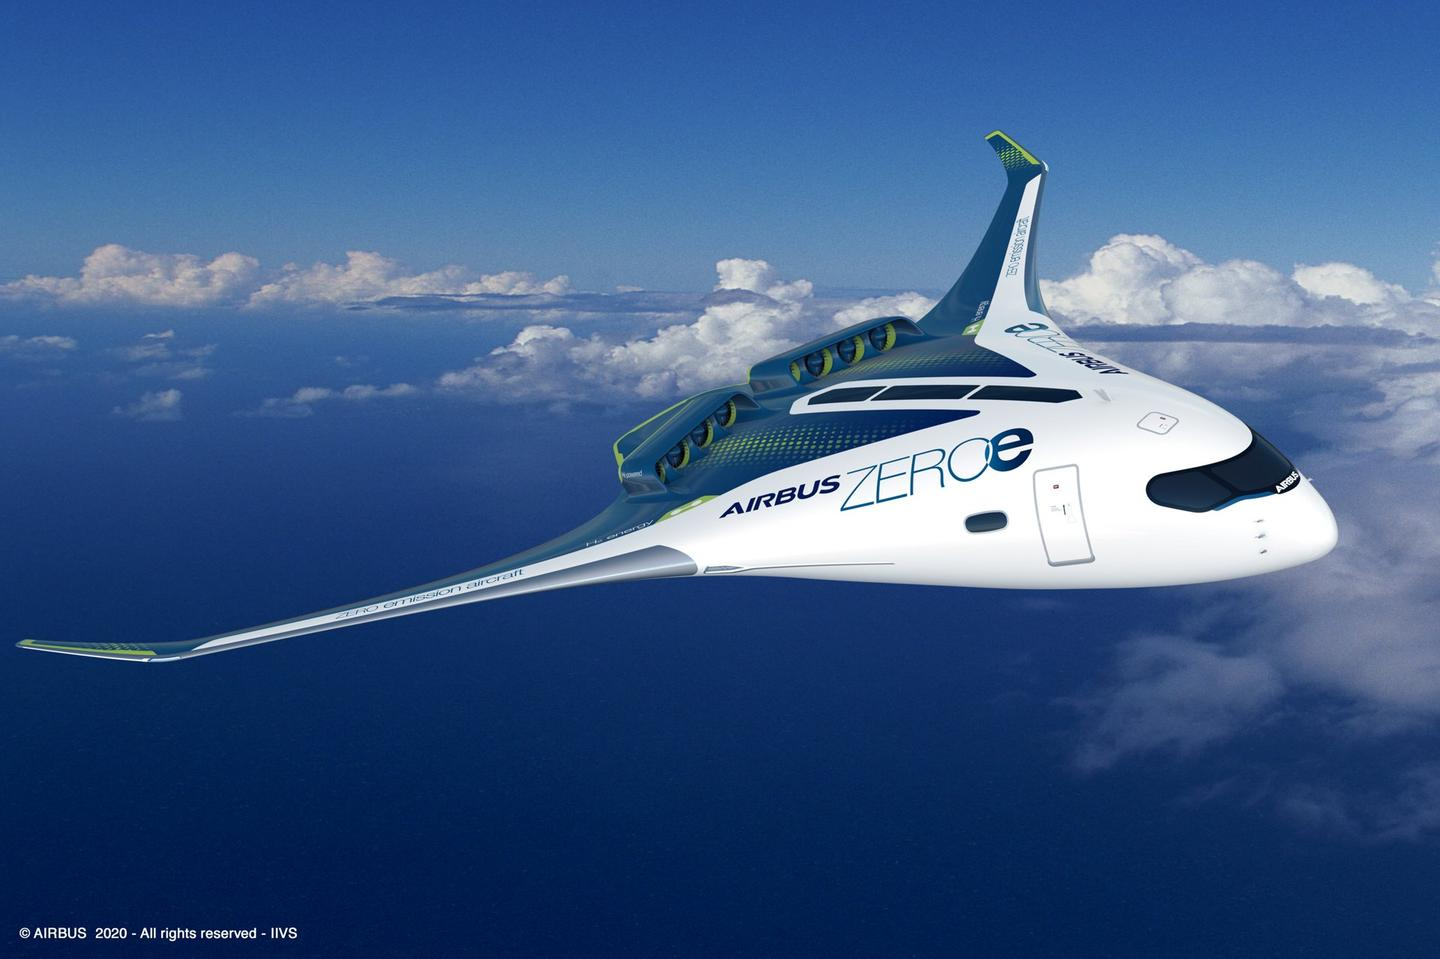 A hydrogen-fueled blended wing concept allows for multiple fuel storage and cabin configurations